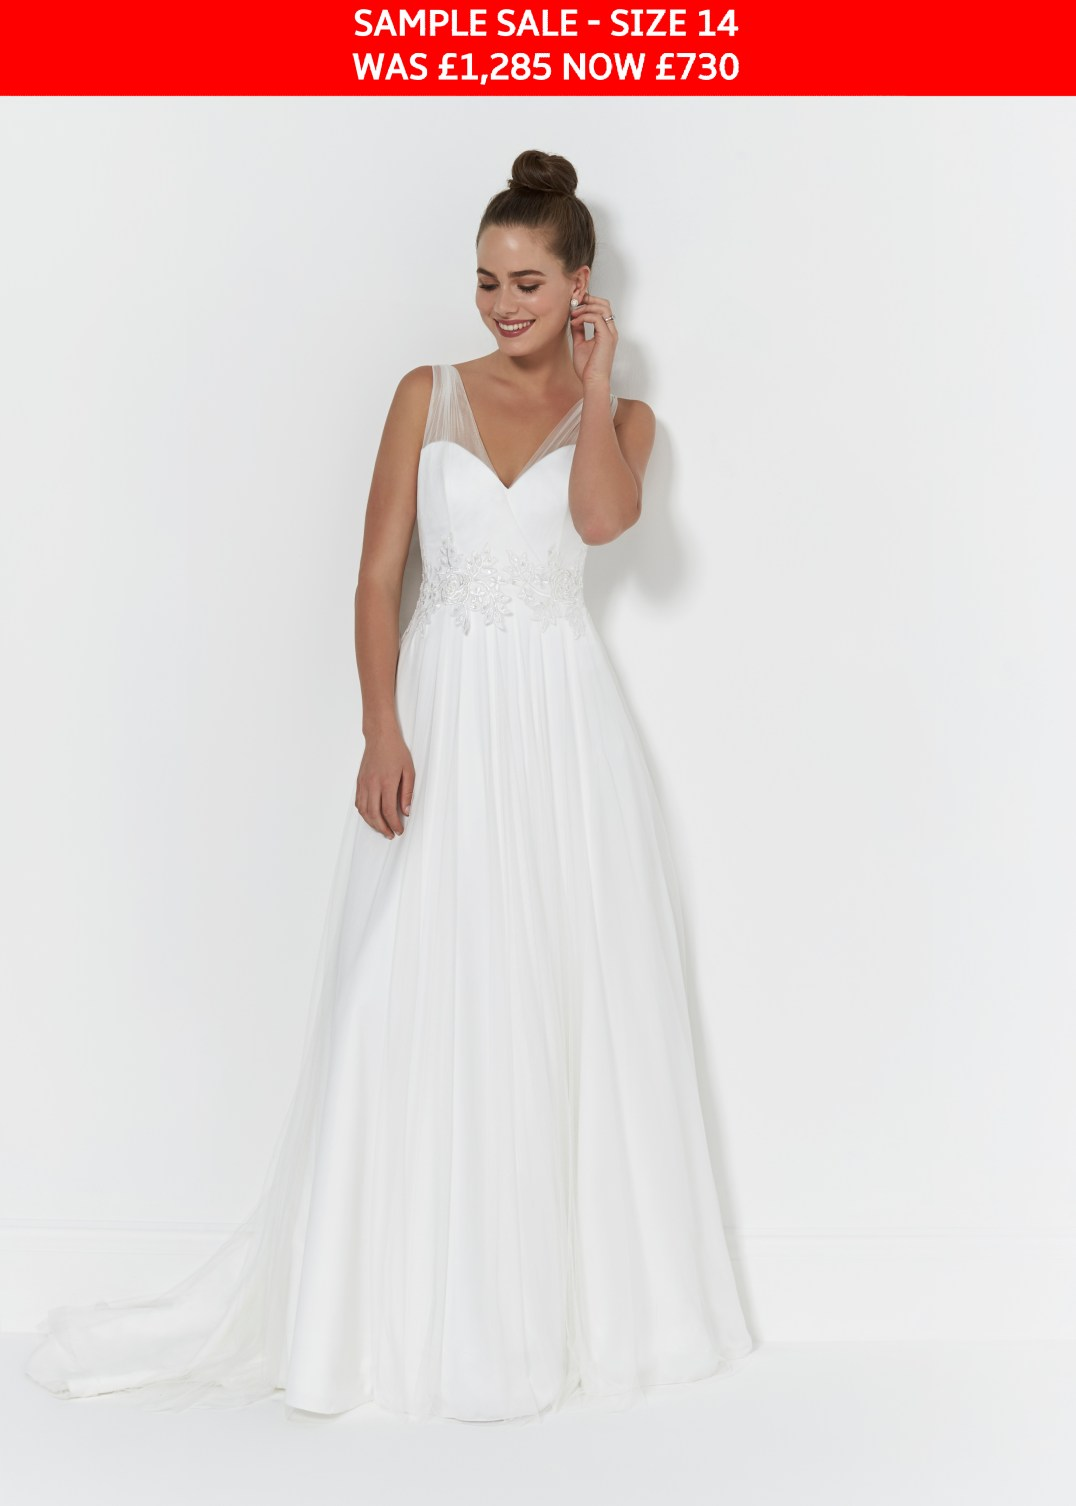 So Sassi Libby wedding dress sample sale